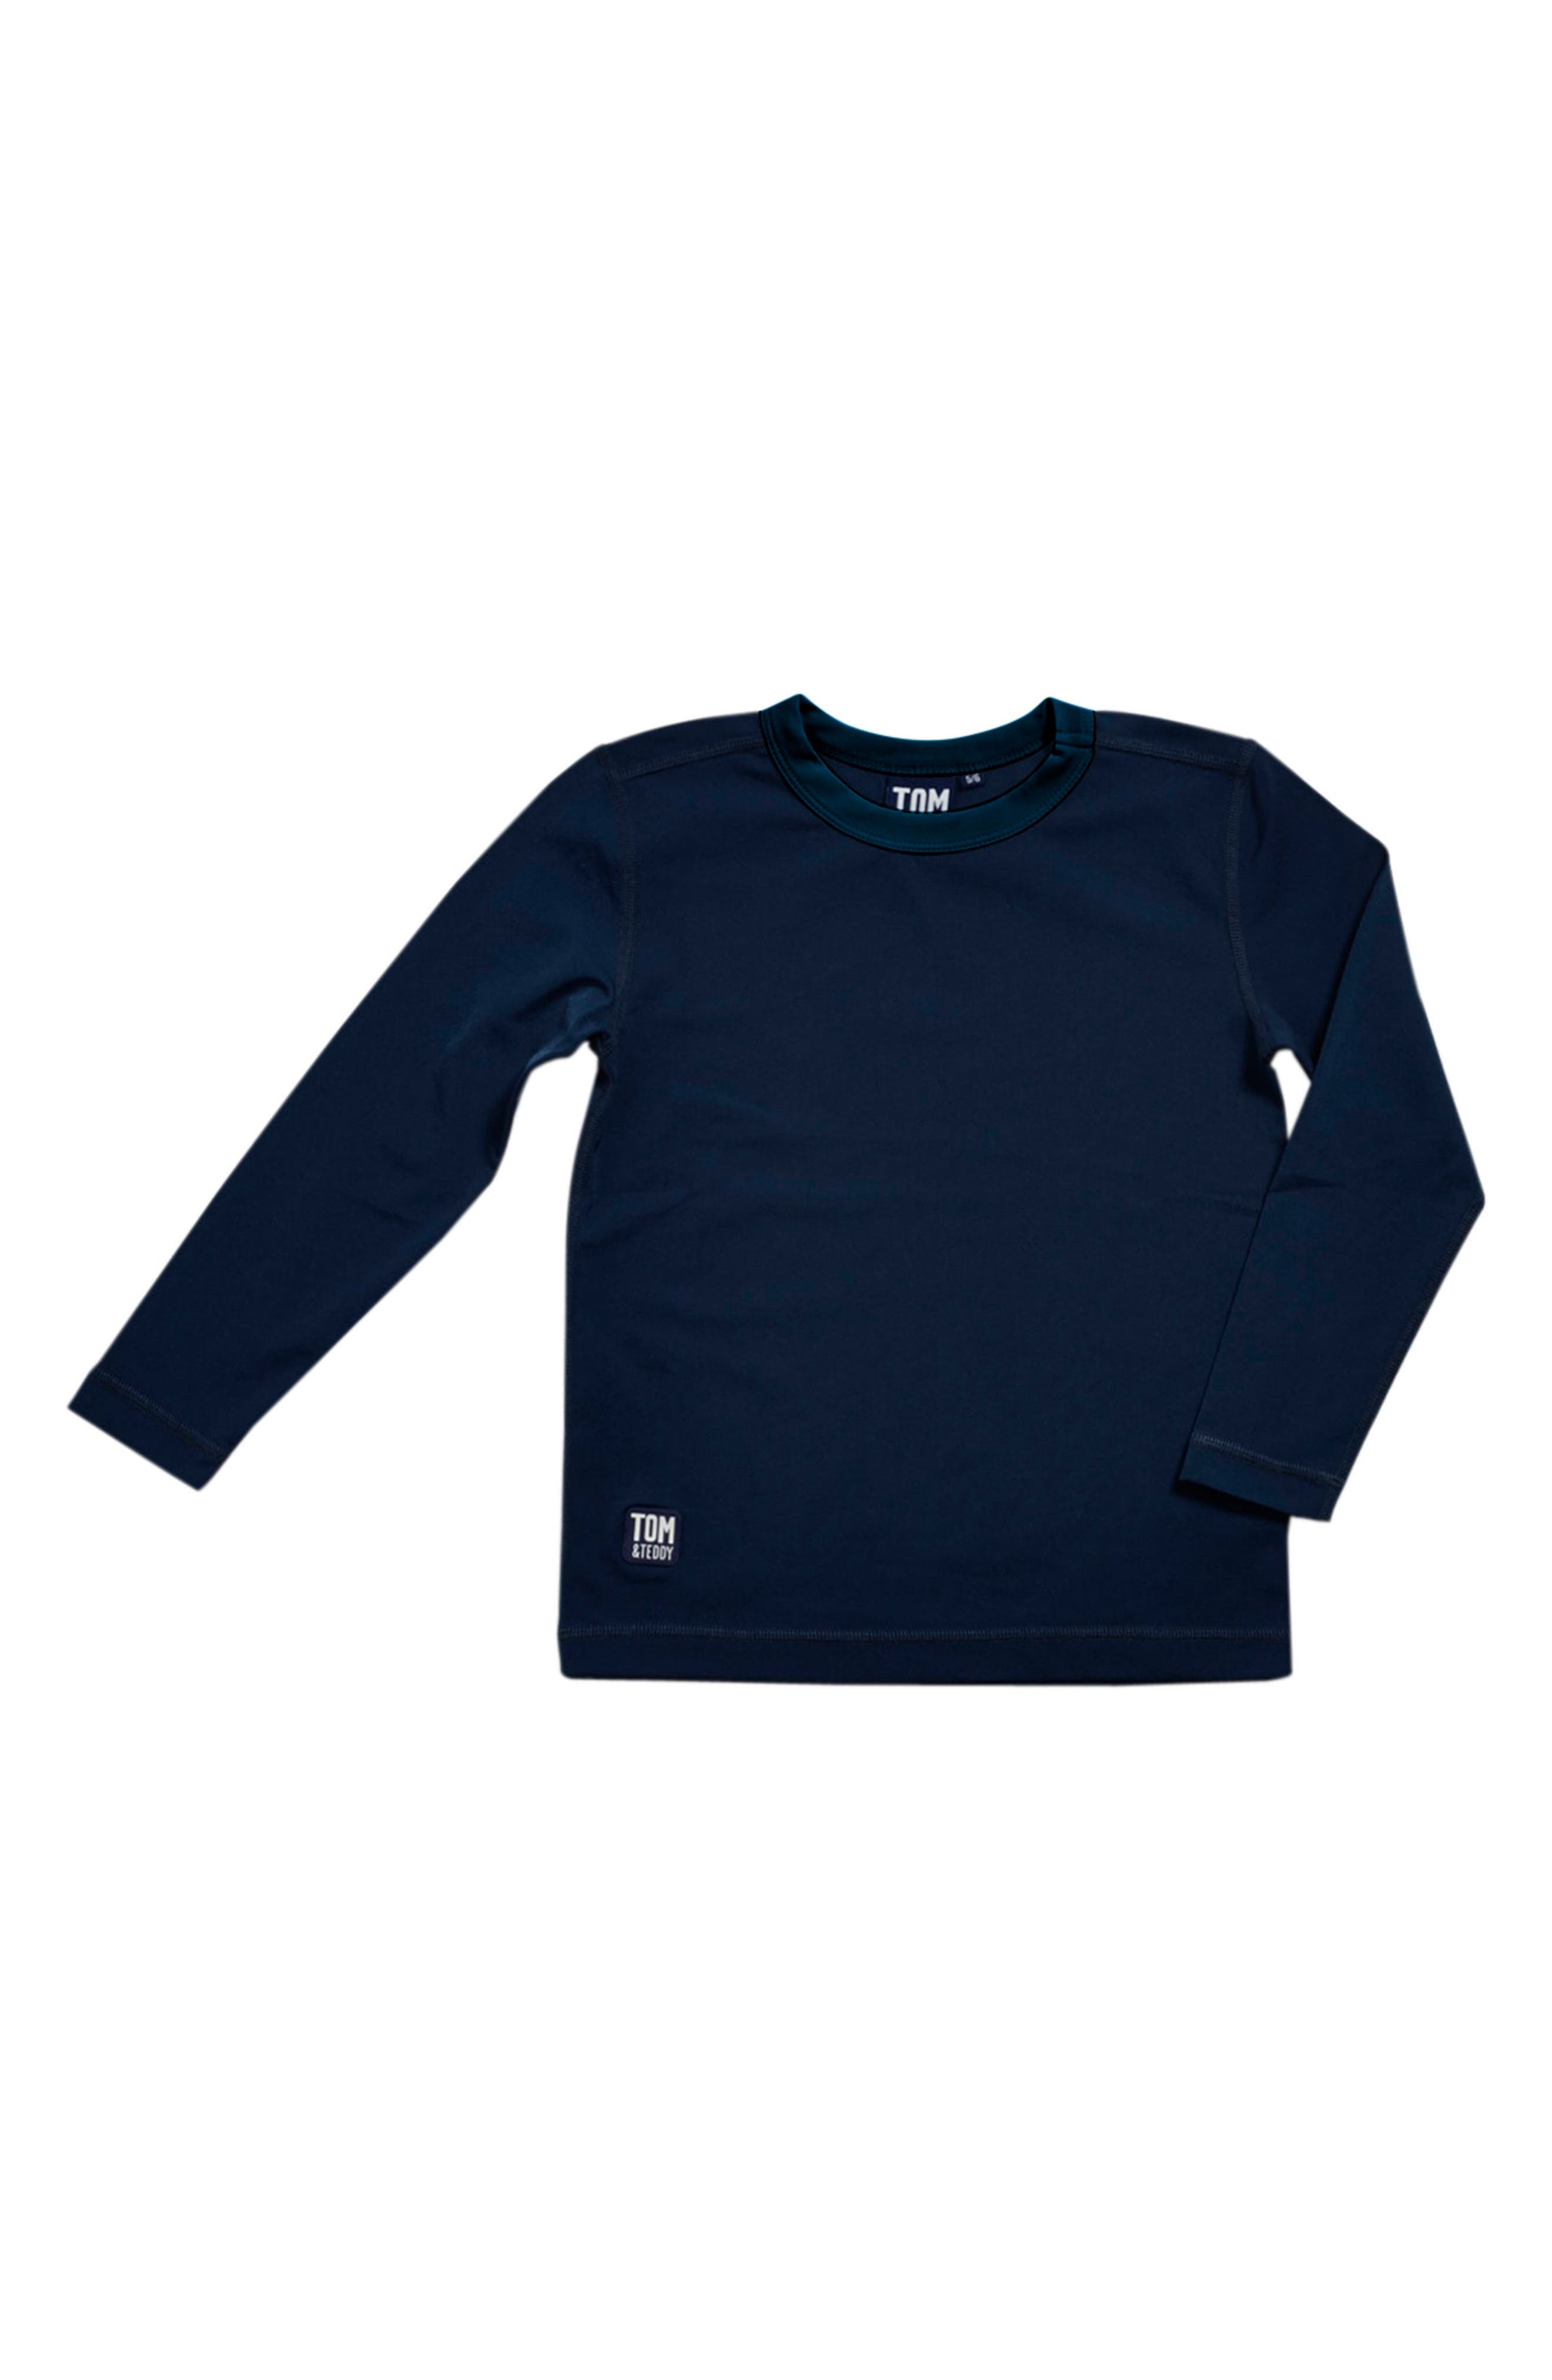 Tom & Teddy Long Sleeve Rashguard (Toddler Boys, Little Boys & Big Boys)